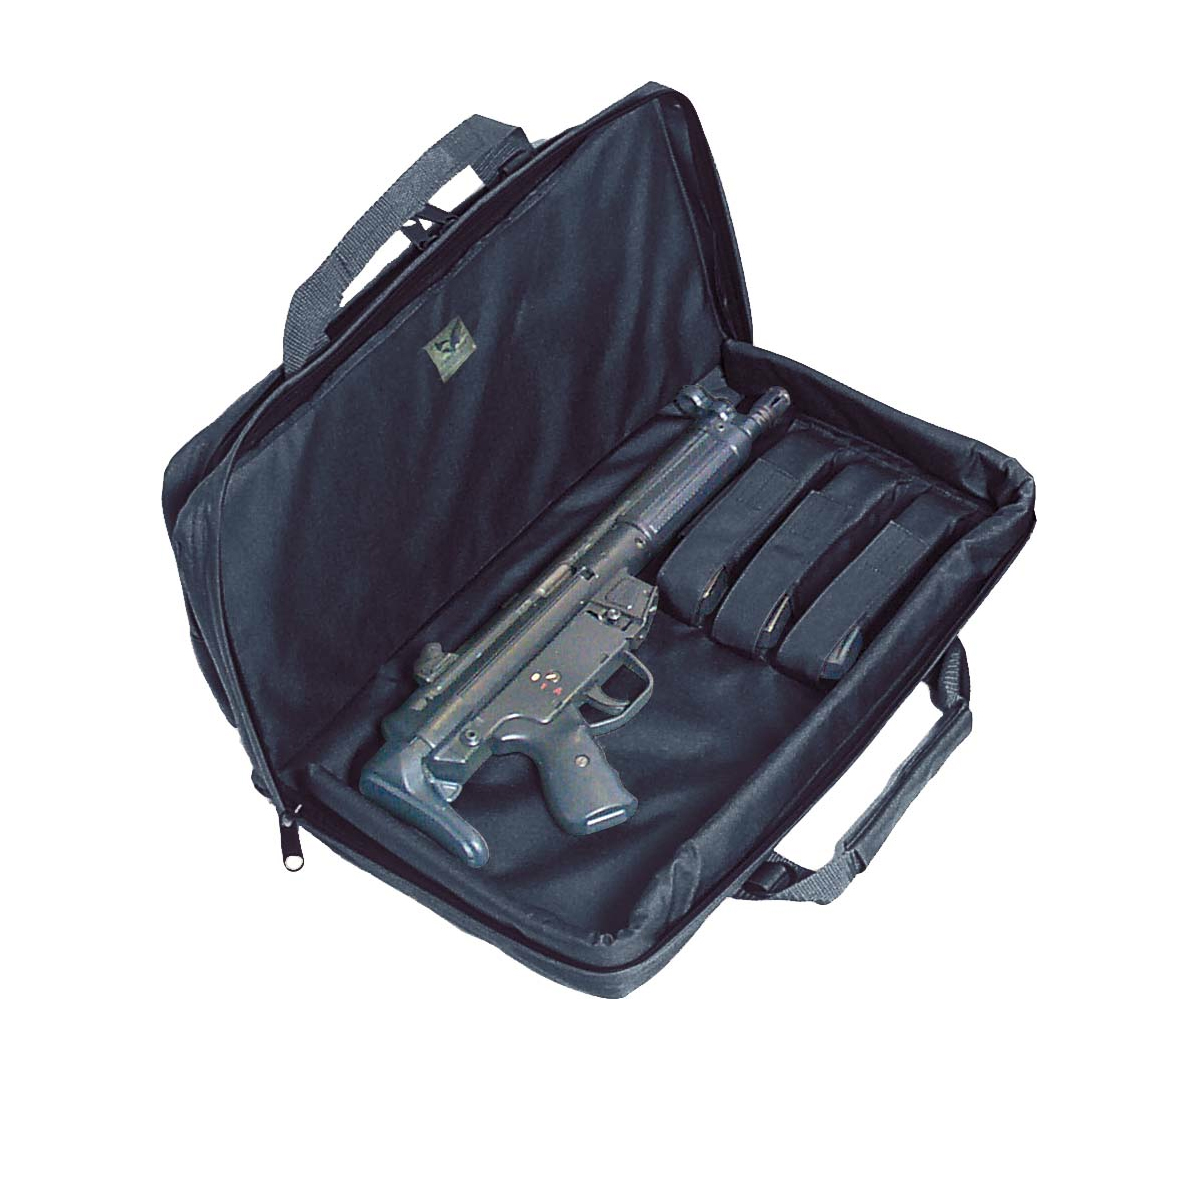 Wiskurtactical Com 22 Quot Discreet Rifle Case Mp5 Uzi